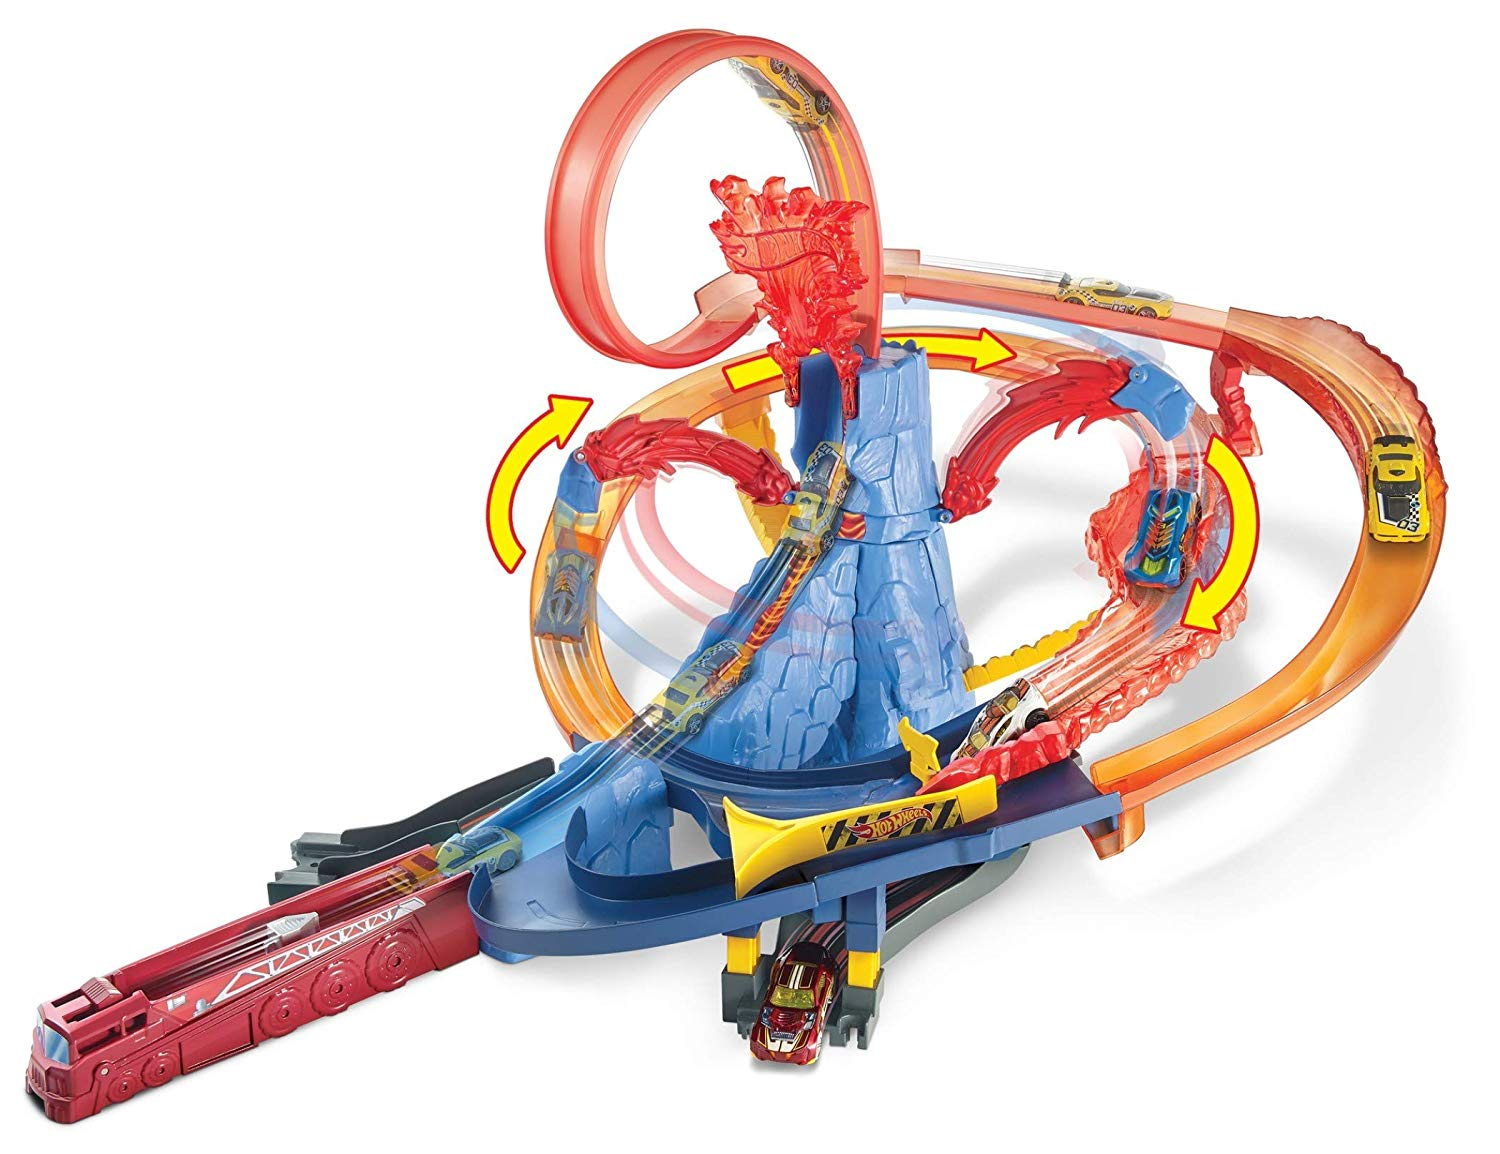 Mattel Hot Wheels Volcano super loop dráha